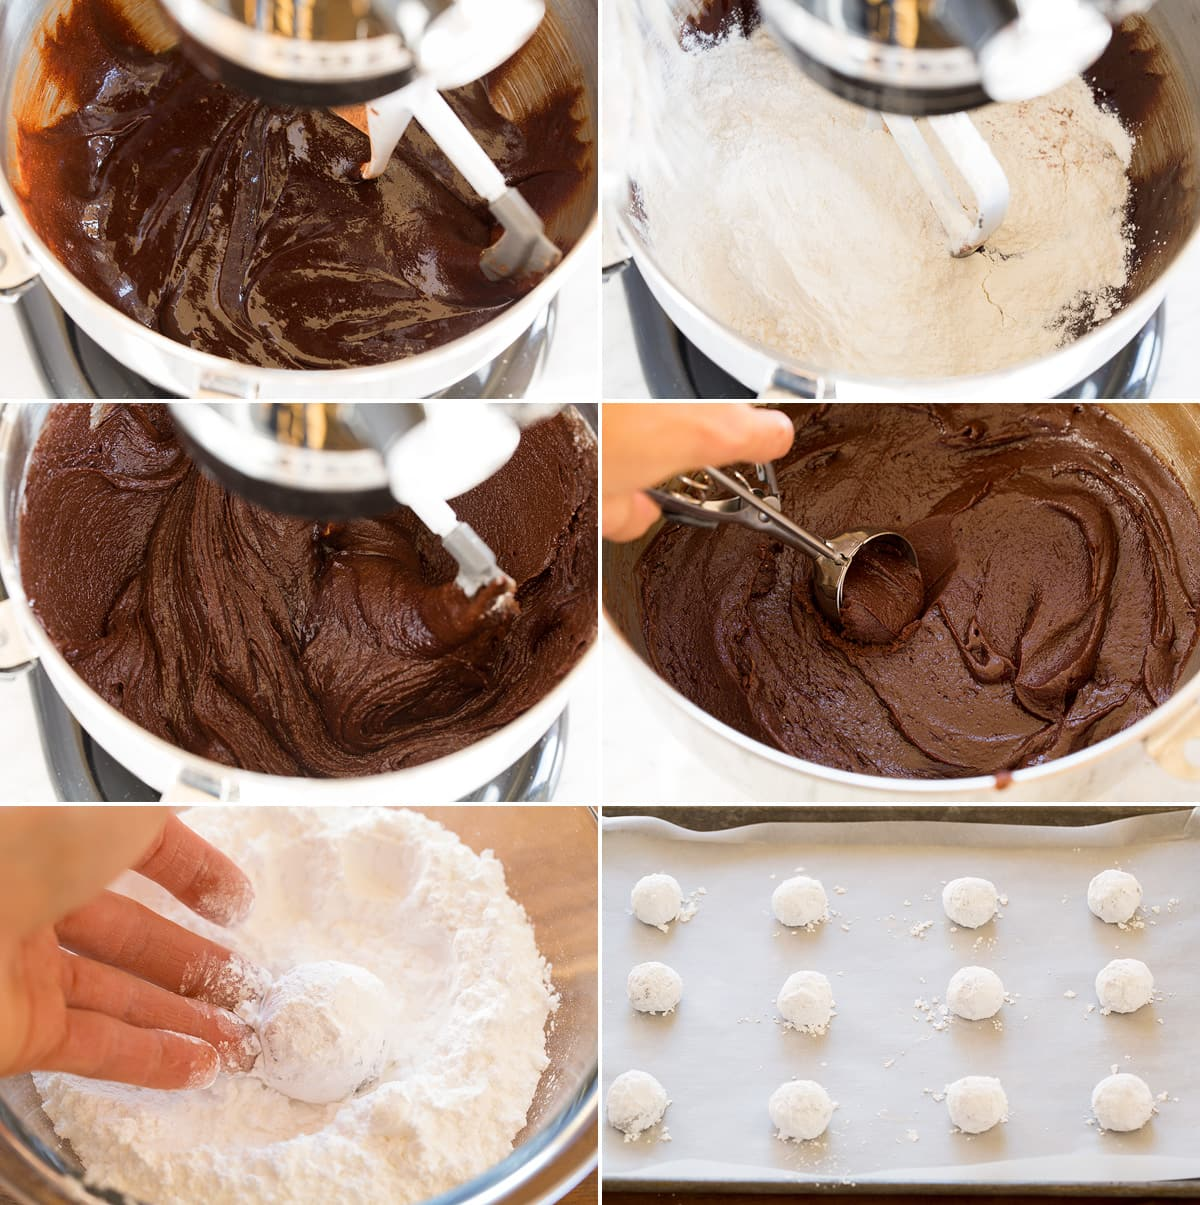 Collage of six images showing steps to finishing crinkle cookie dough by mixing in flour. Then shows scooping it out with a cookies scoop after dough is chilled and more solid. Then image shows rolling in powdered sugar and last includes dough balls on baking sheet.